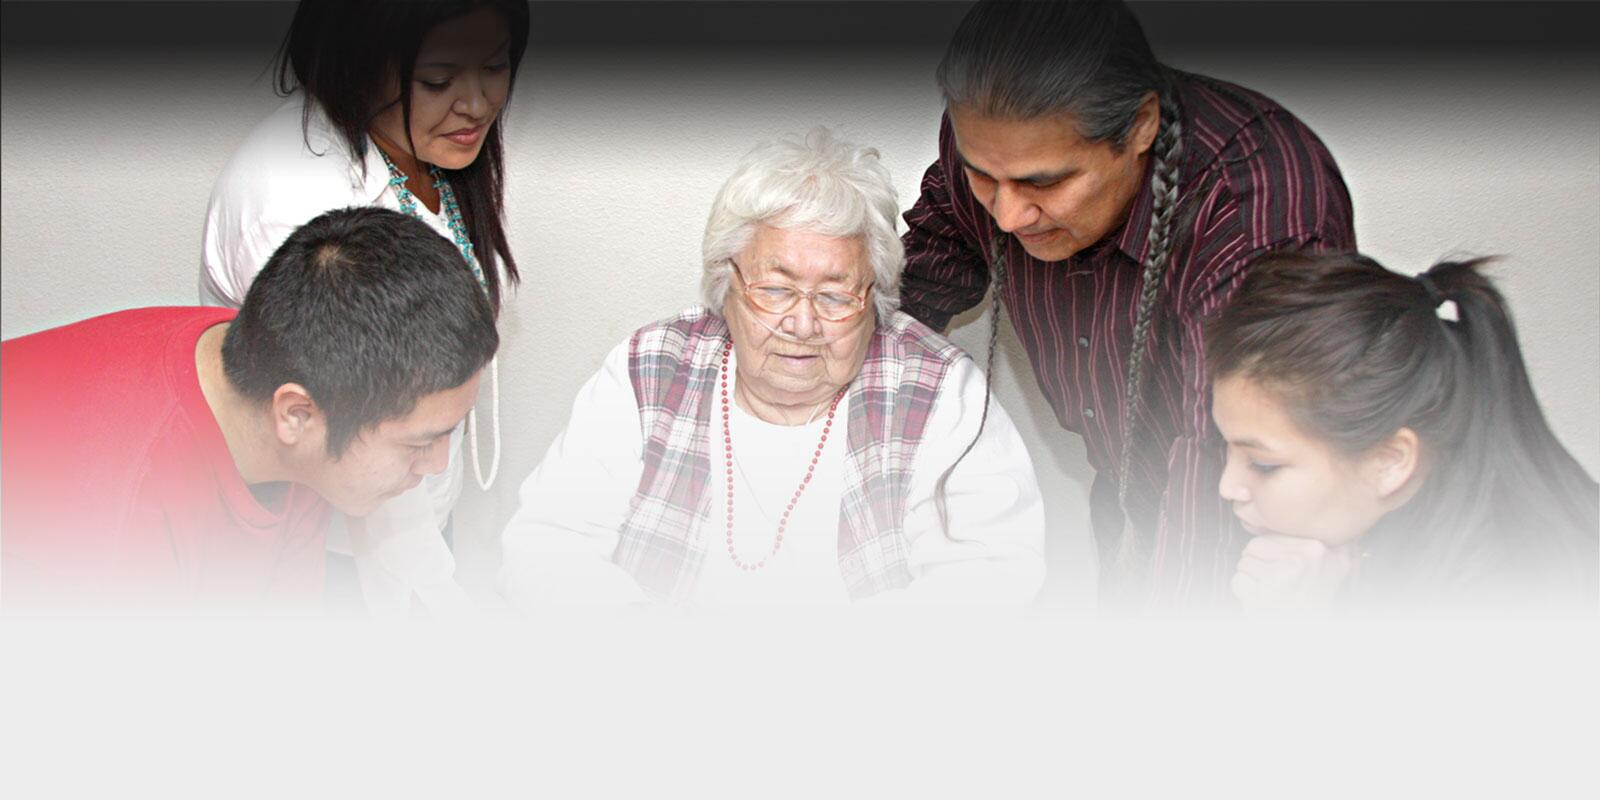 Picture of a multigenerational Native American family gathering around the grandmother at a table.